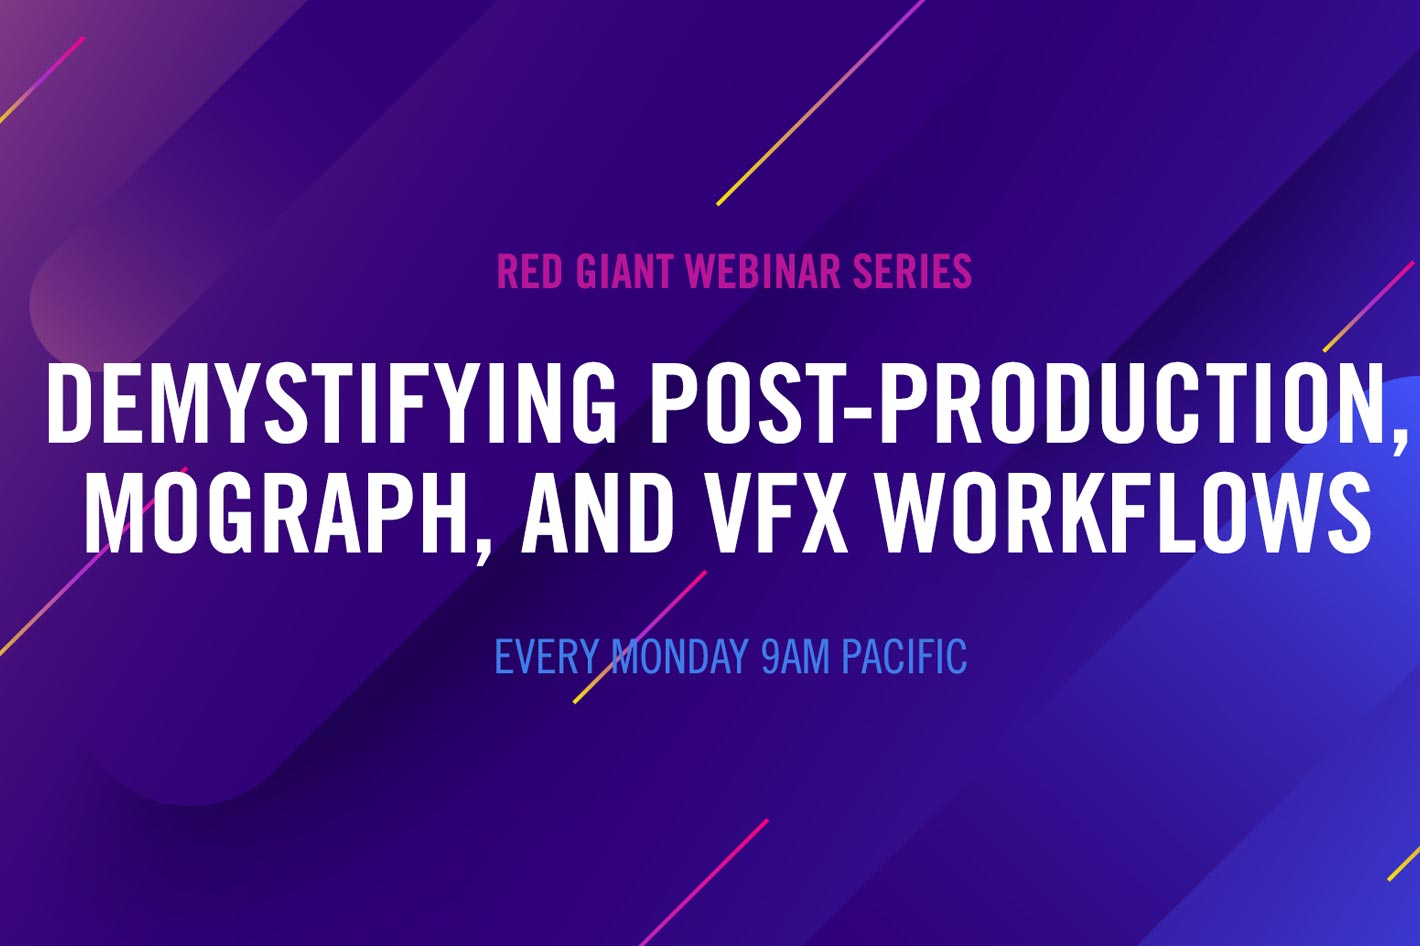 Demystifying Post-Production: a FREE webinar series